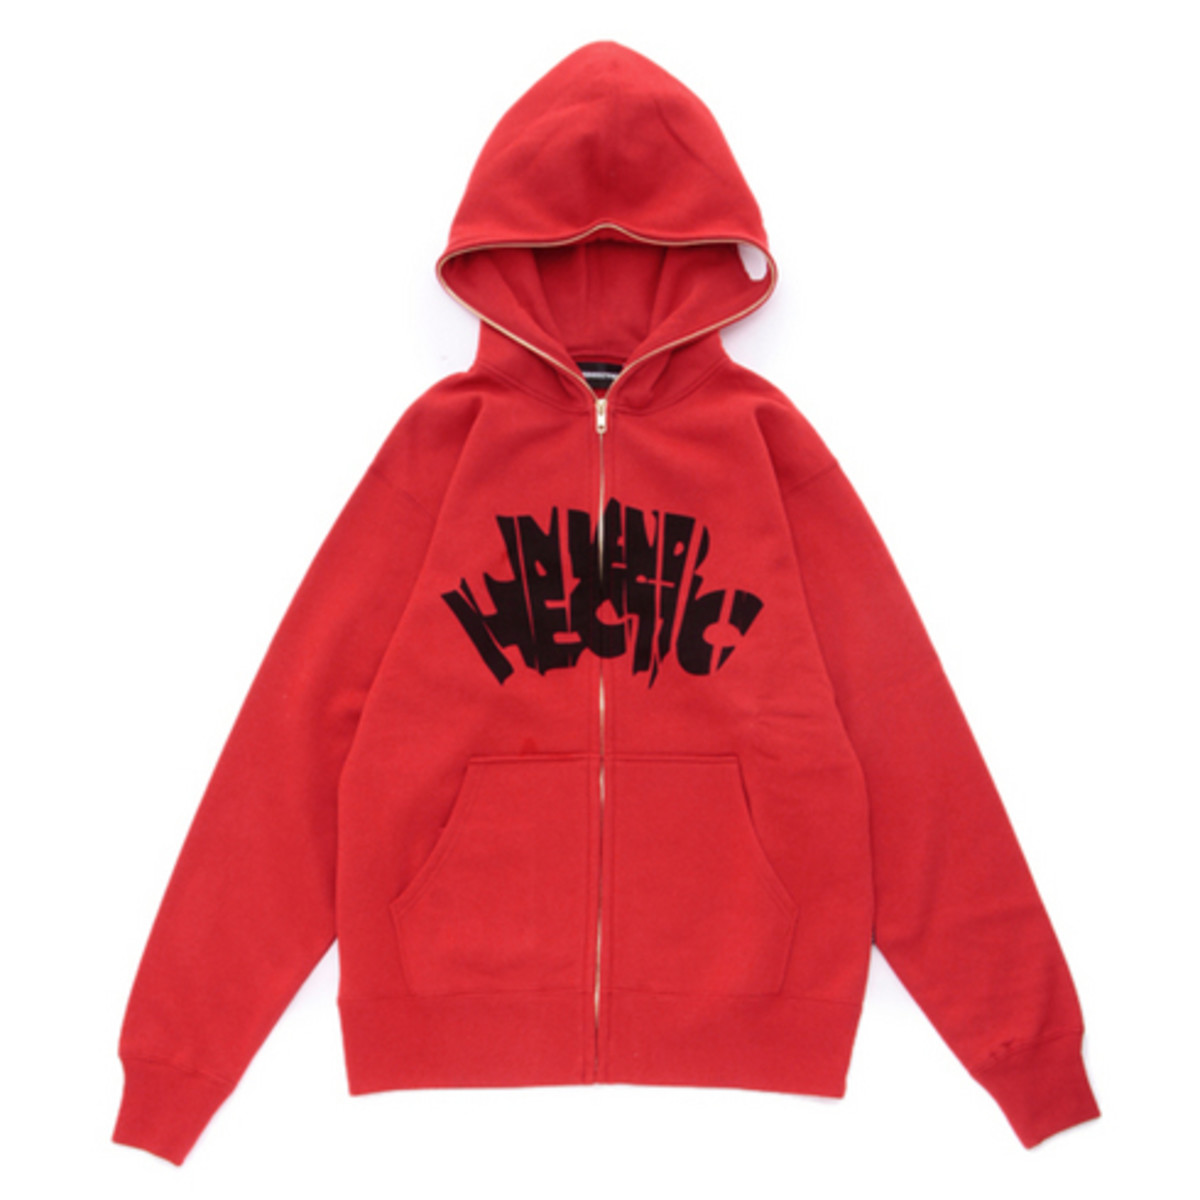 elephant-man-hoody-red